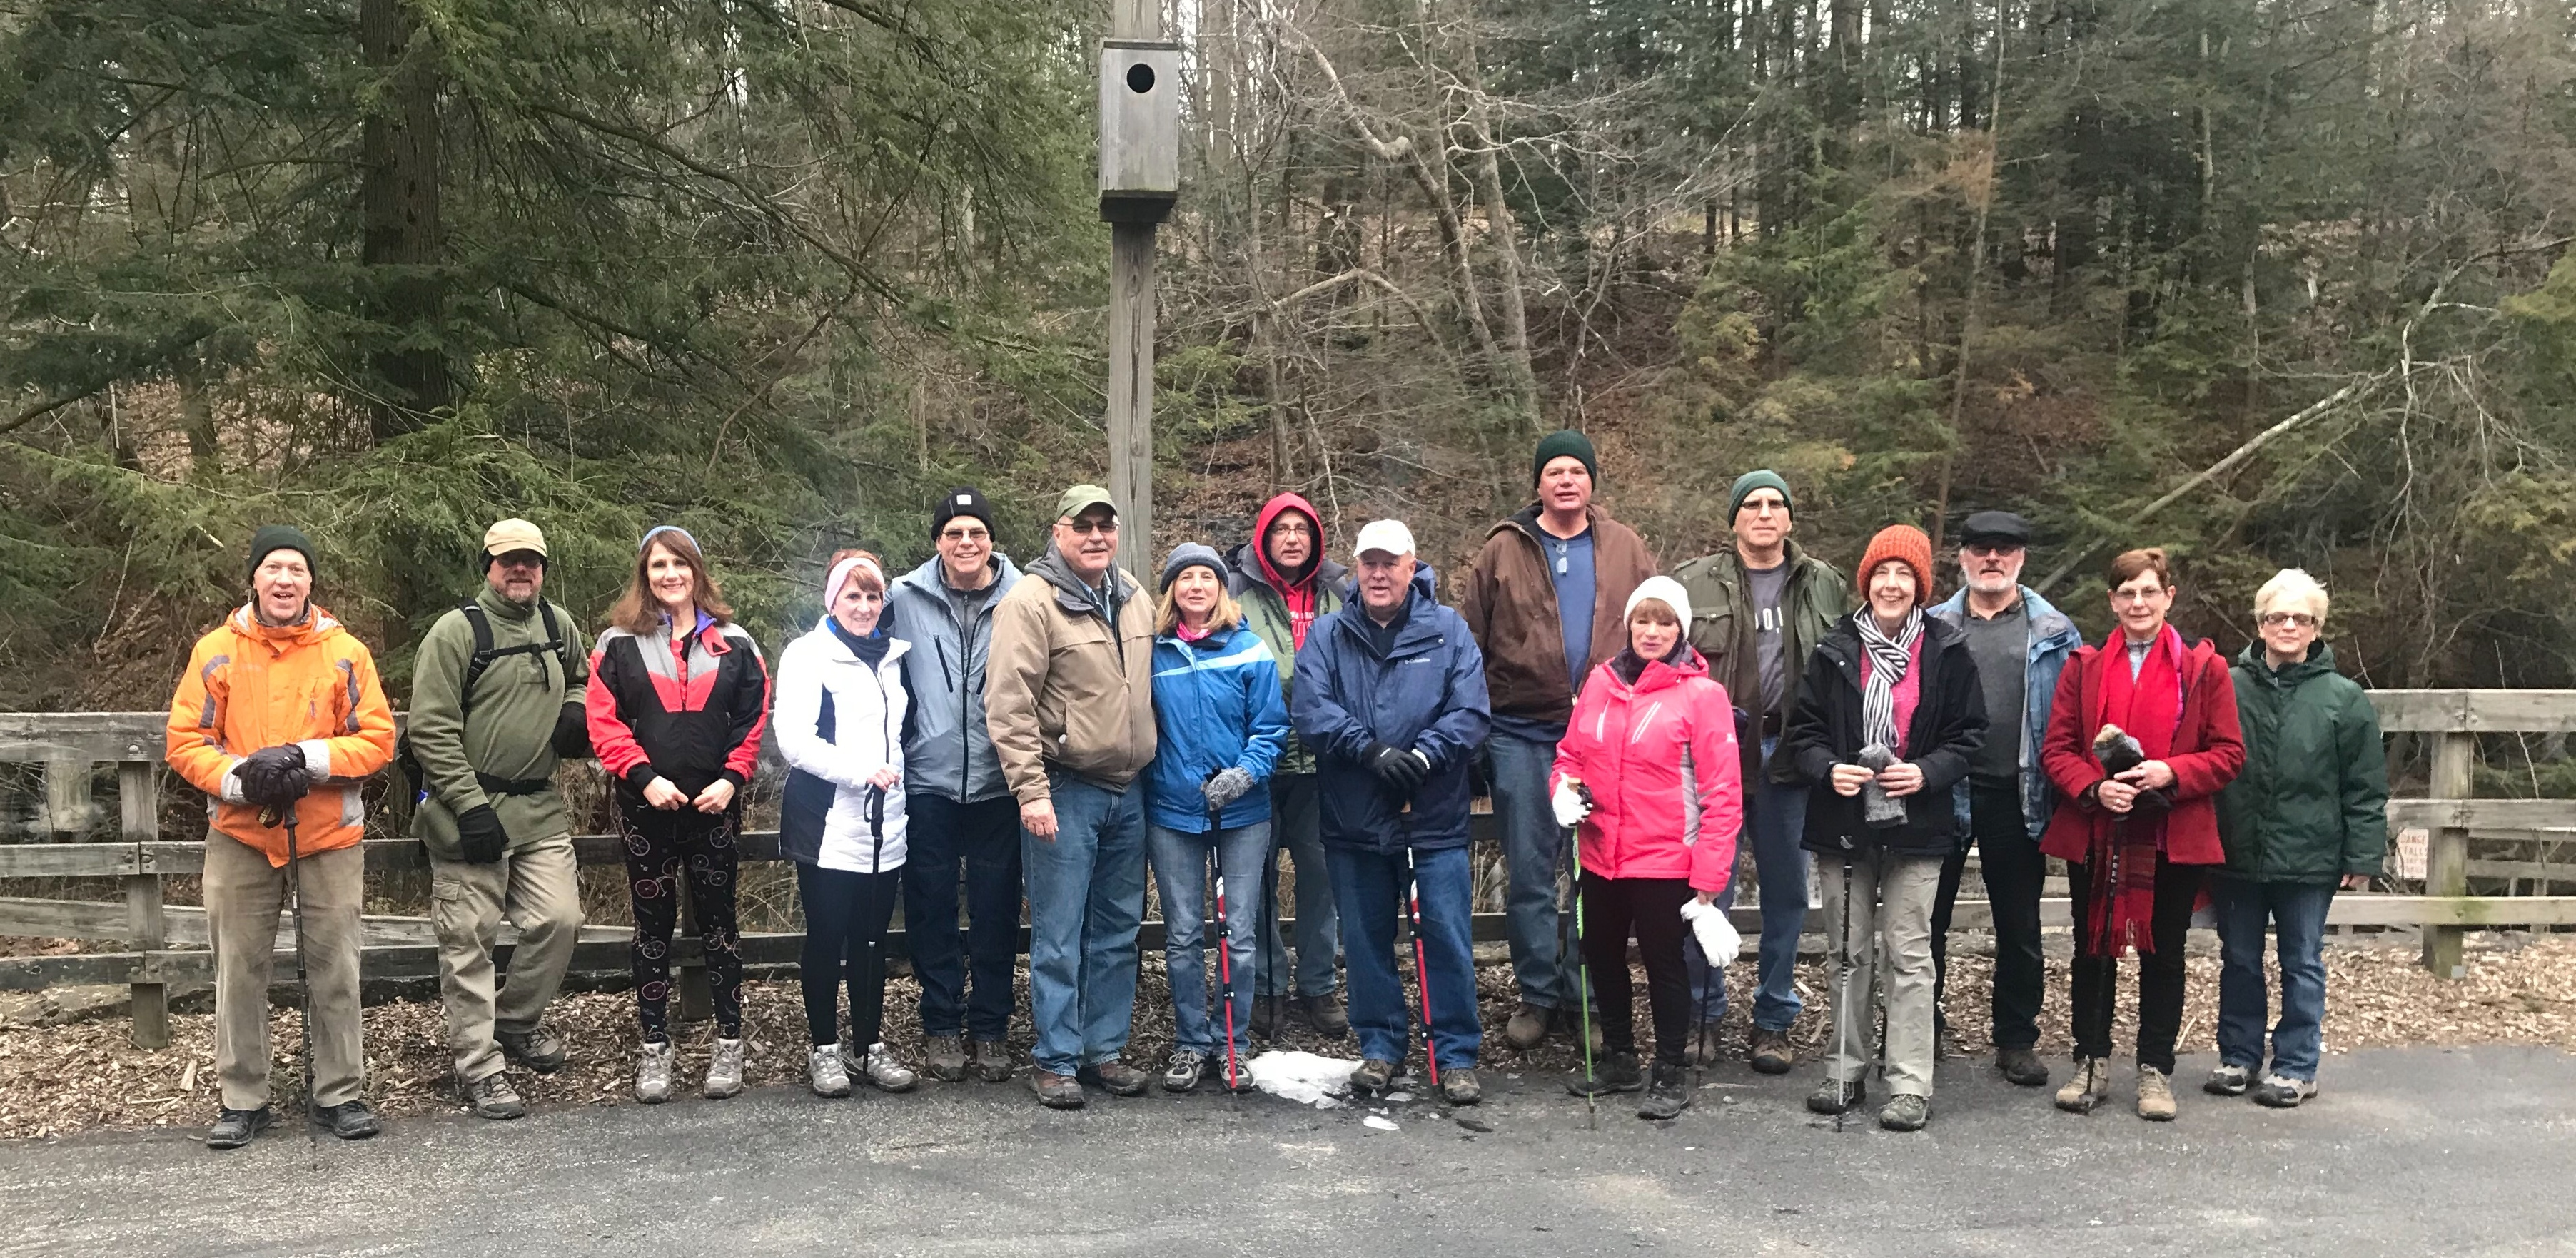 2/17/19. 5 mi hike. Thanks Duane for leading!